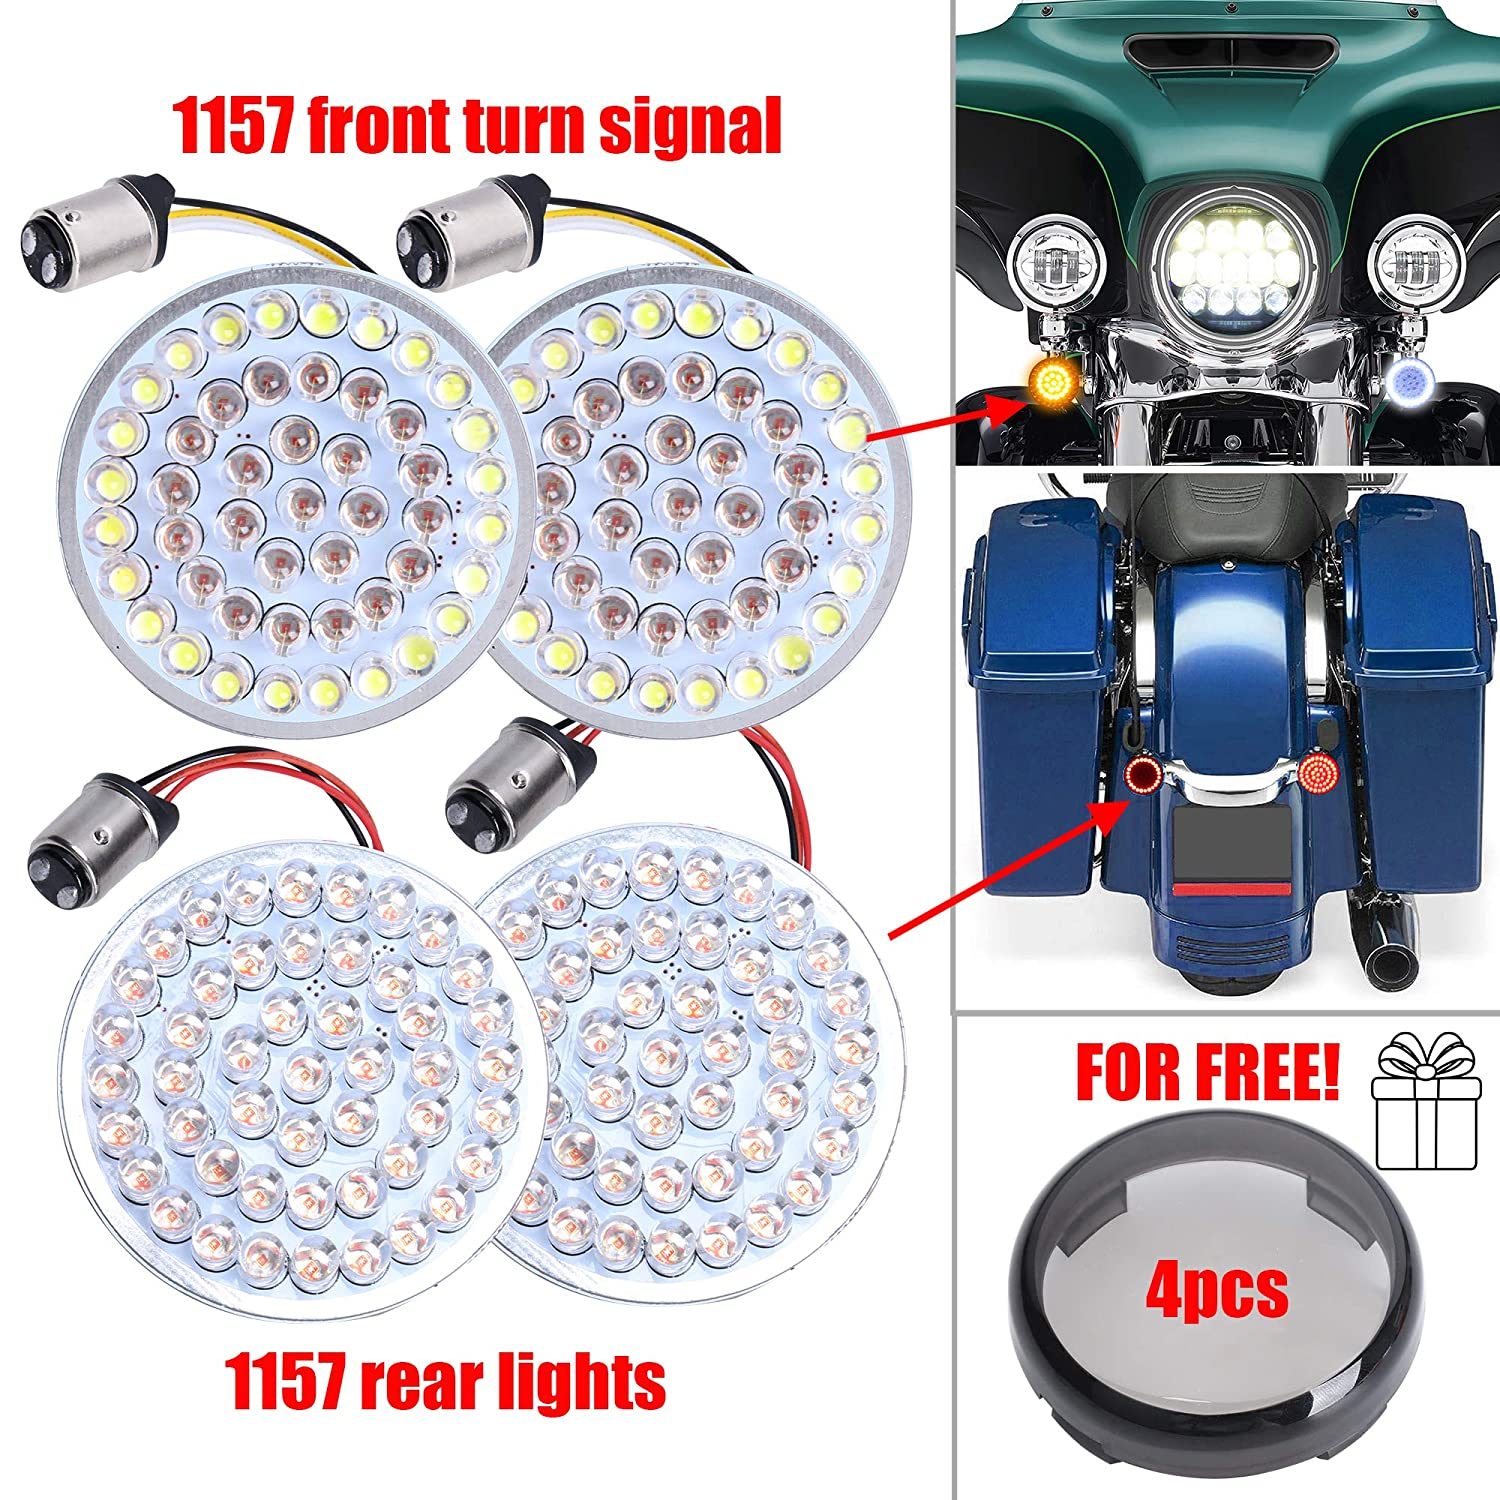 Audexen 2' LED Turn Signal Kit for Harley 1157 Base White/Amber Front Turn Signal bulbs + 1157 Double Connector Red Rear Light + Black Lens for Harley Street Glide